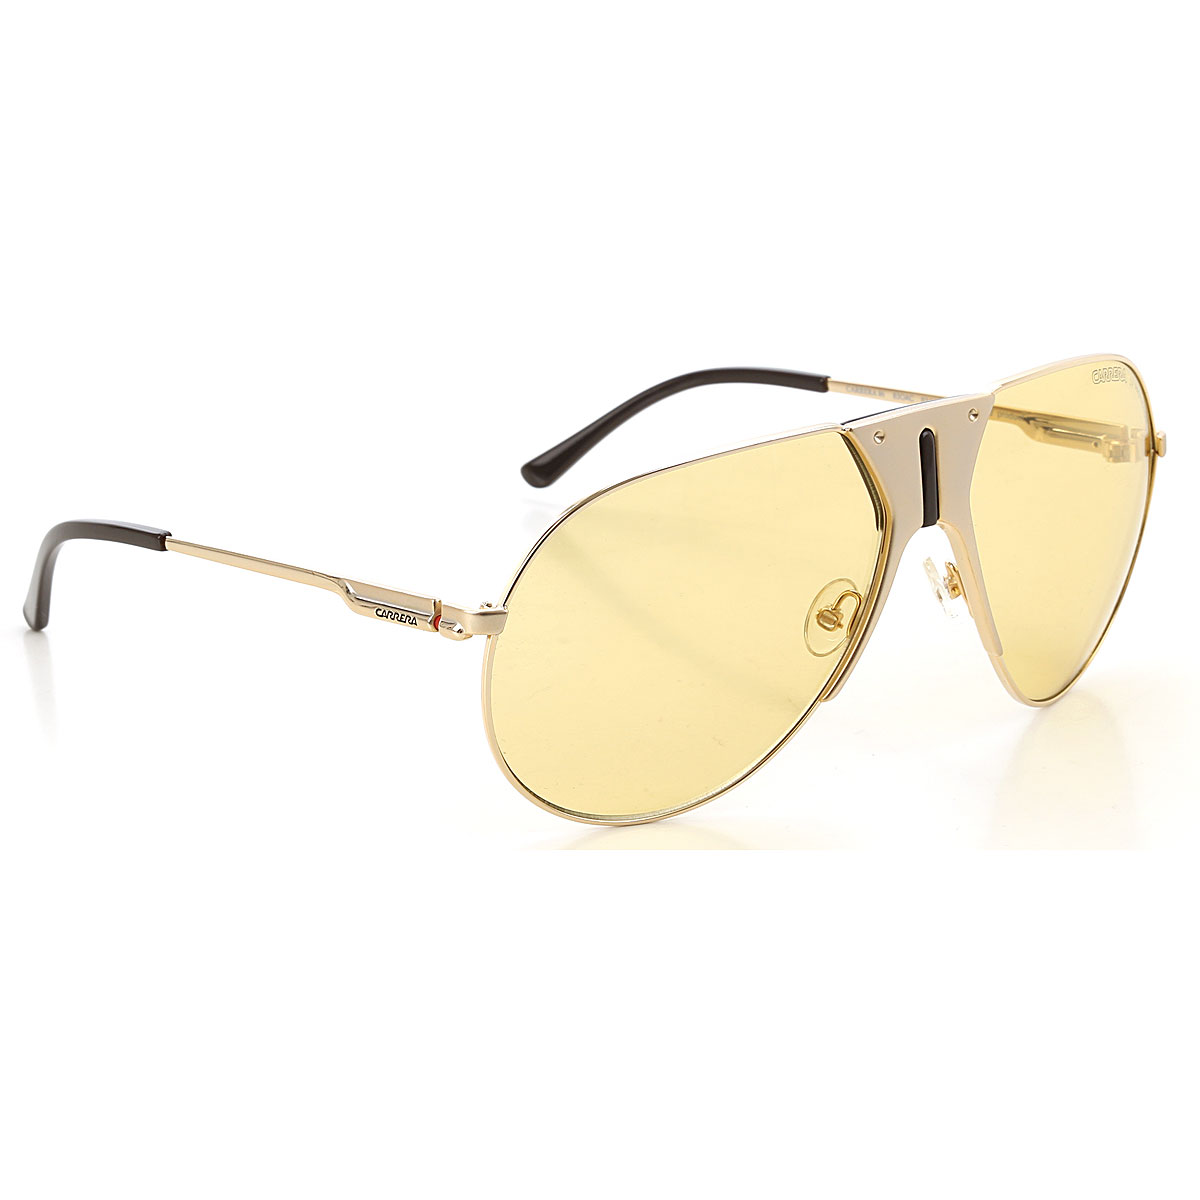 Carrera Sunglasses On Sale, Gold, 2019